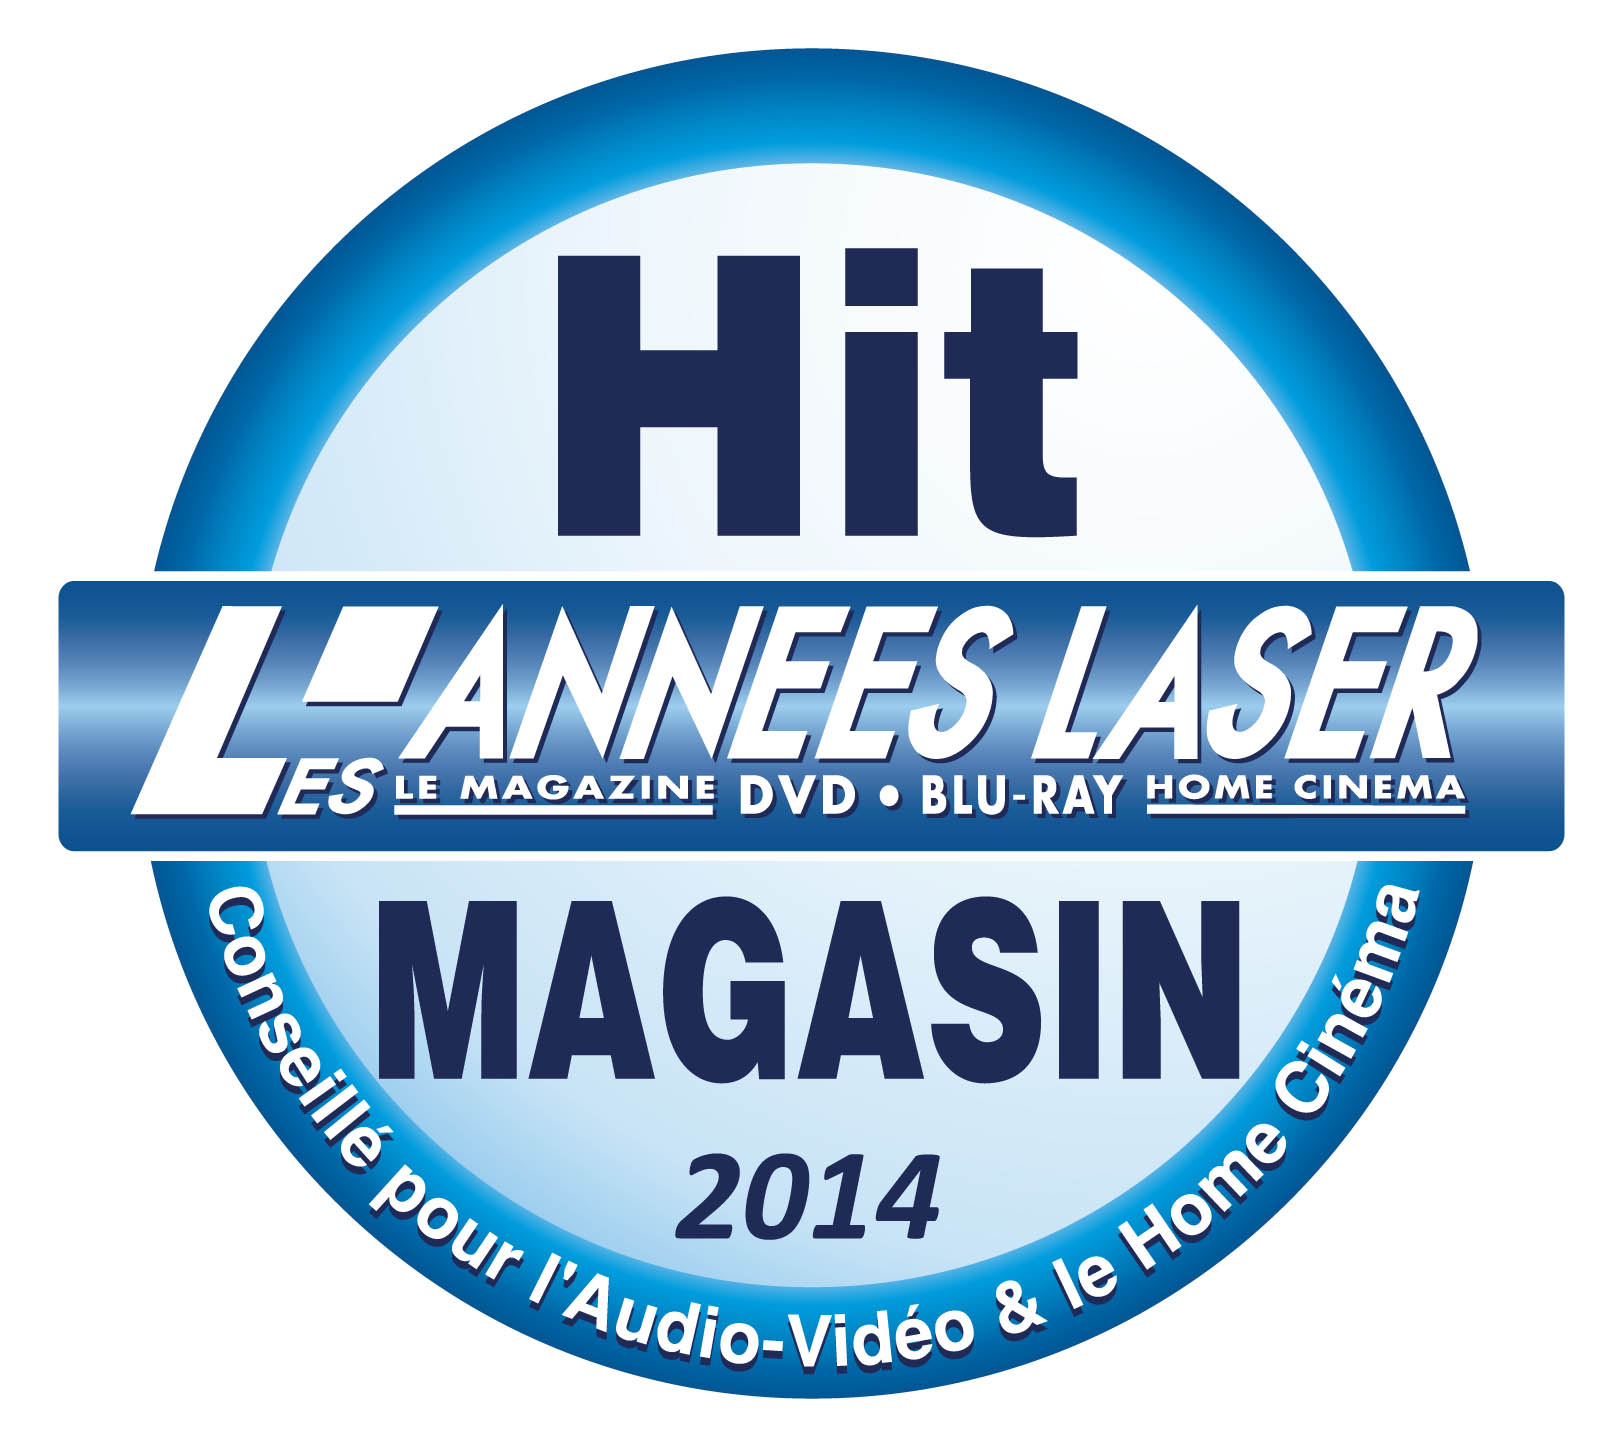 hit-magasin-les-annees-laser-2014